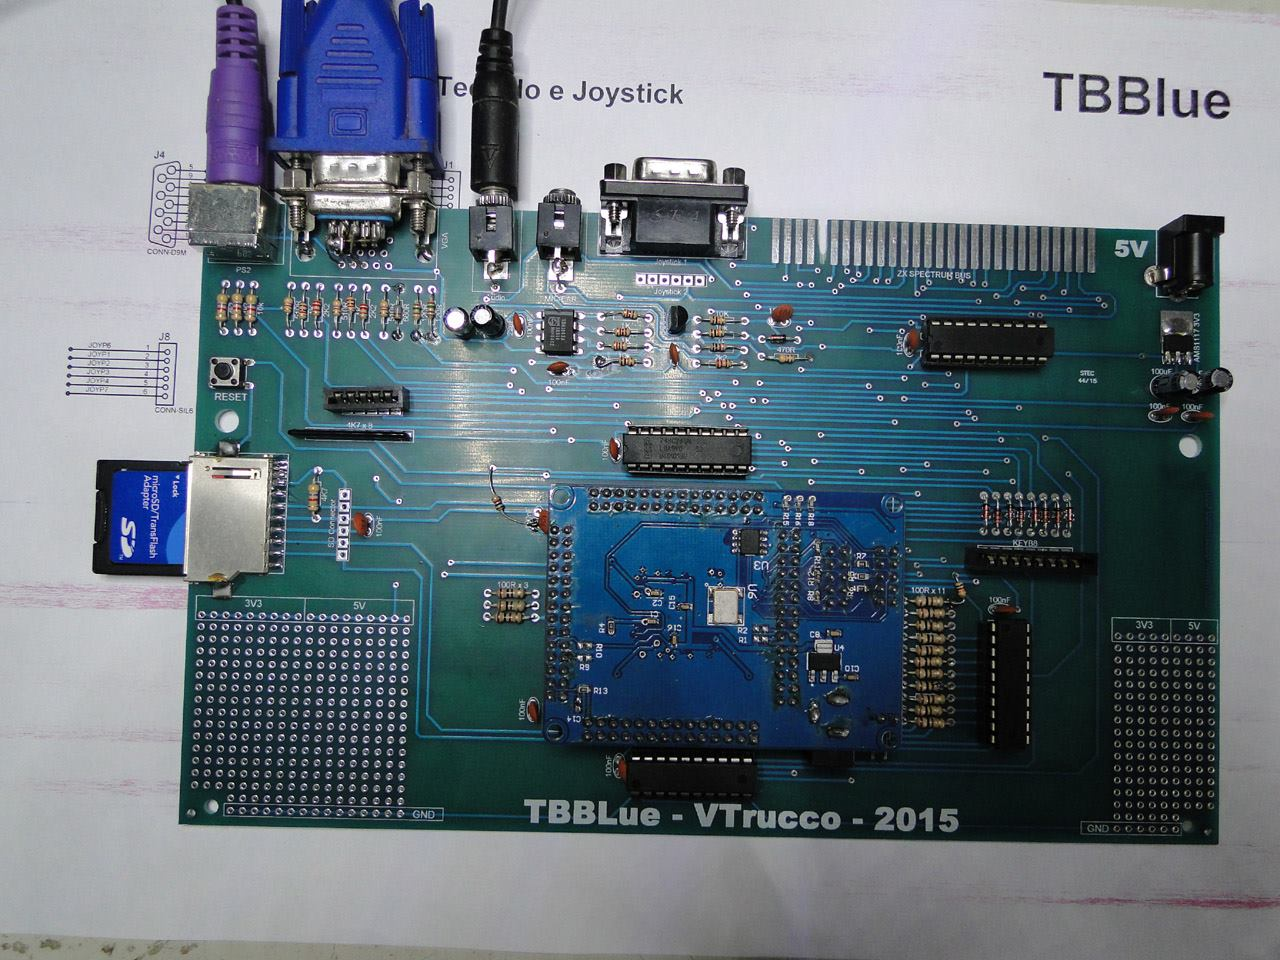 An evolution of TBBlue based around an Altera FPGA - 2015